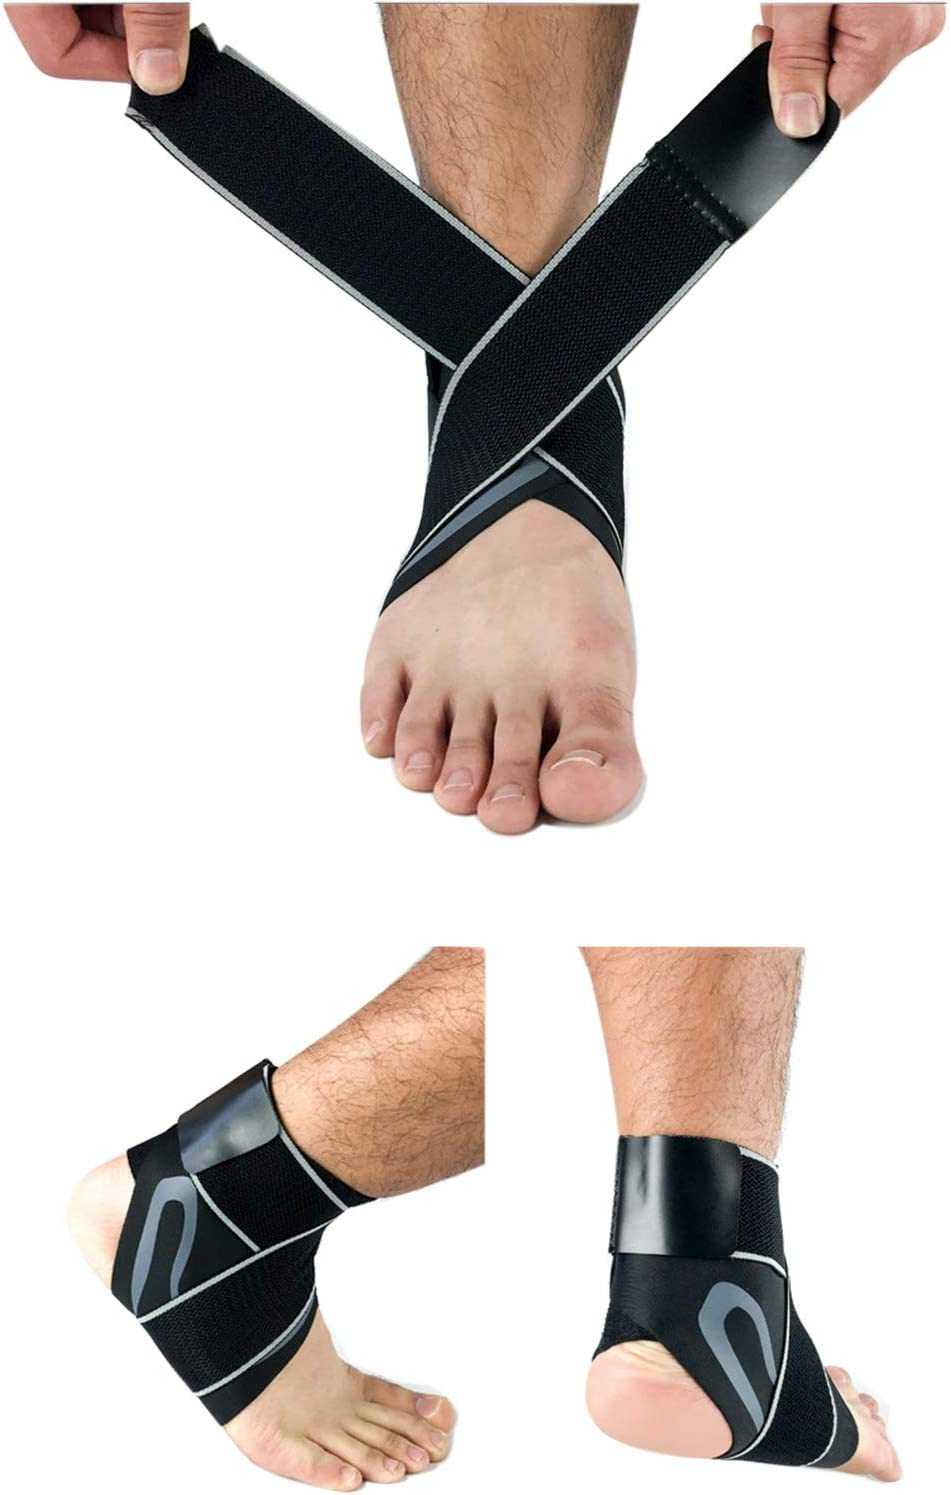 Ankle Brace Adjustable Ankle Stabilizer Compression Brace for Arthritis Pain Relief Sprains Sports Injurie and Recovery Breathable Pair Topcloud Ankle Support